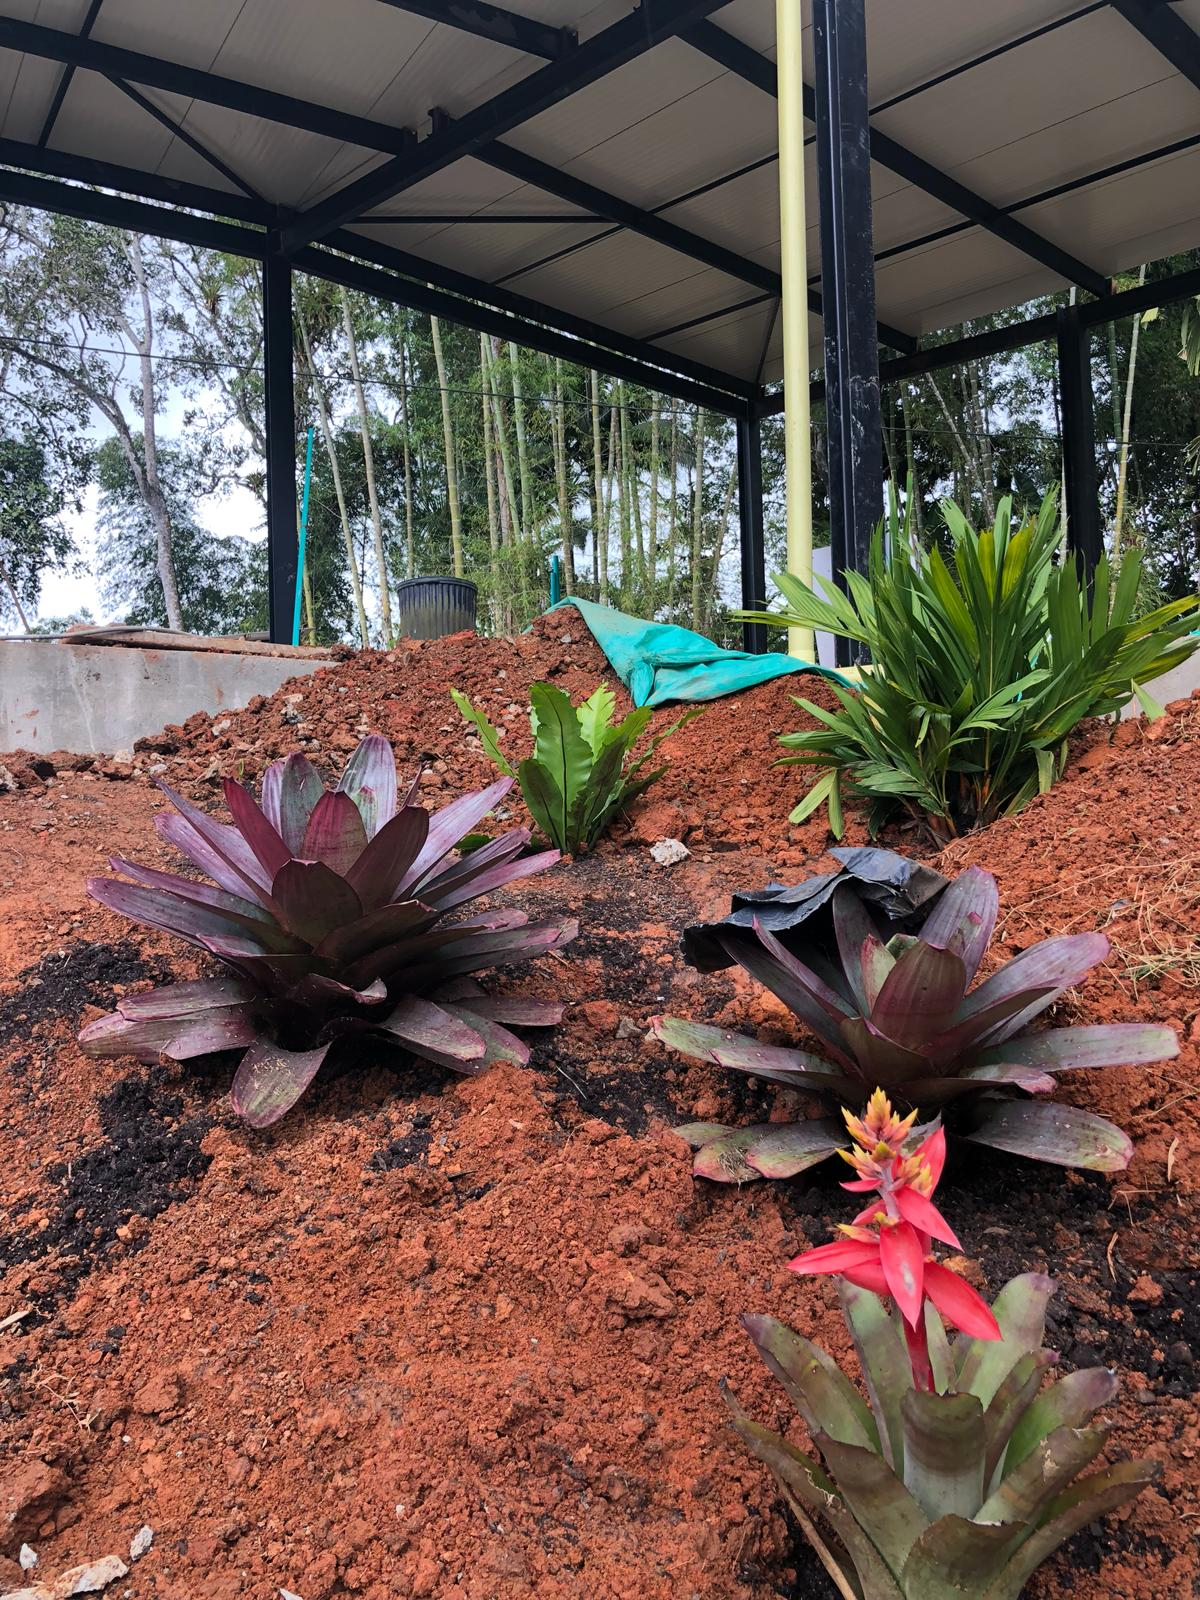 Internal gardens going in, featuring giant bromeliads!